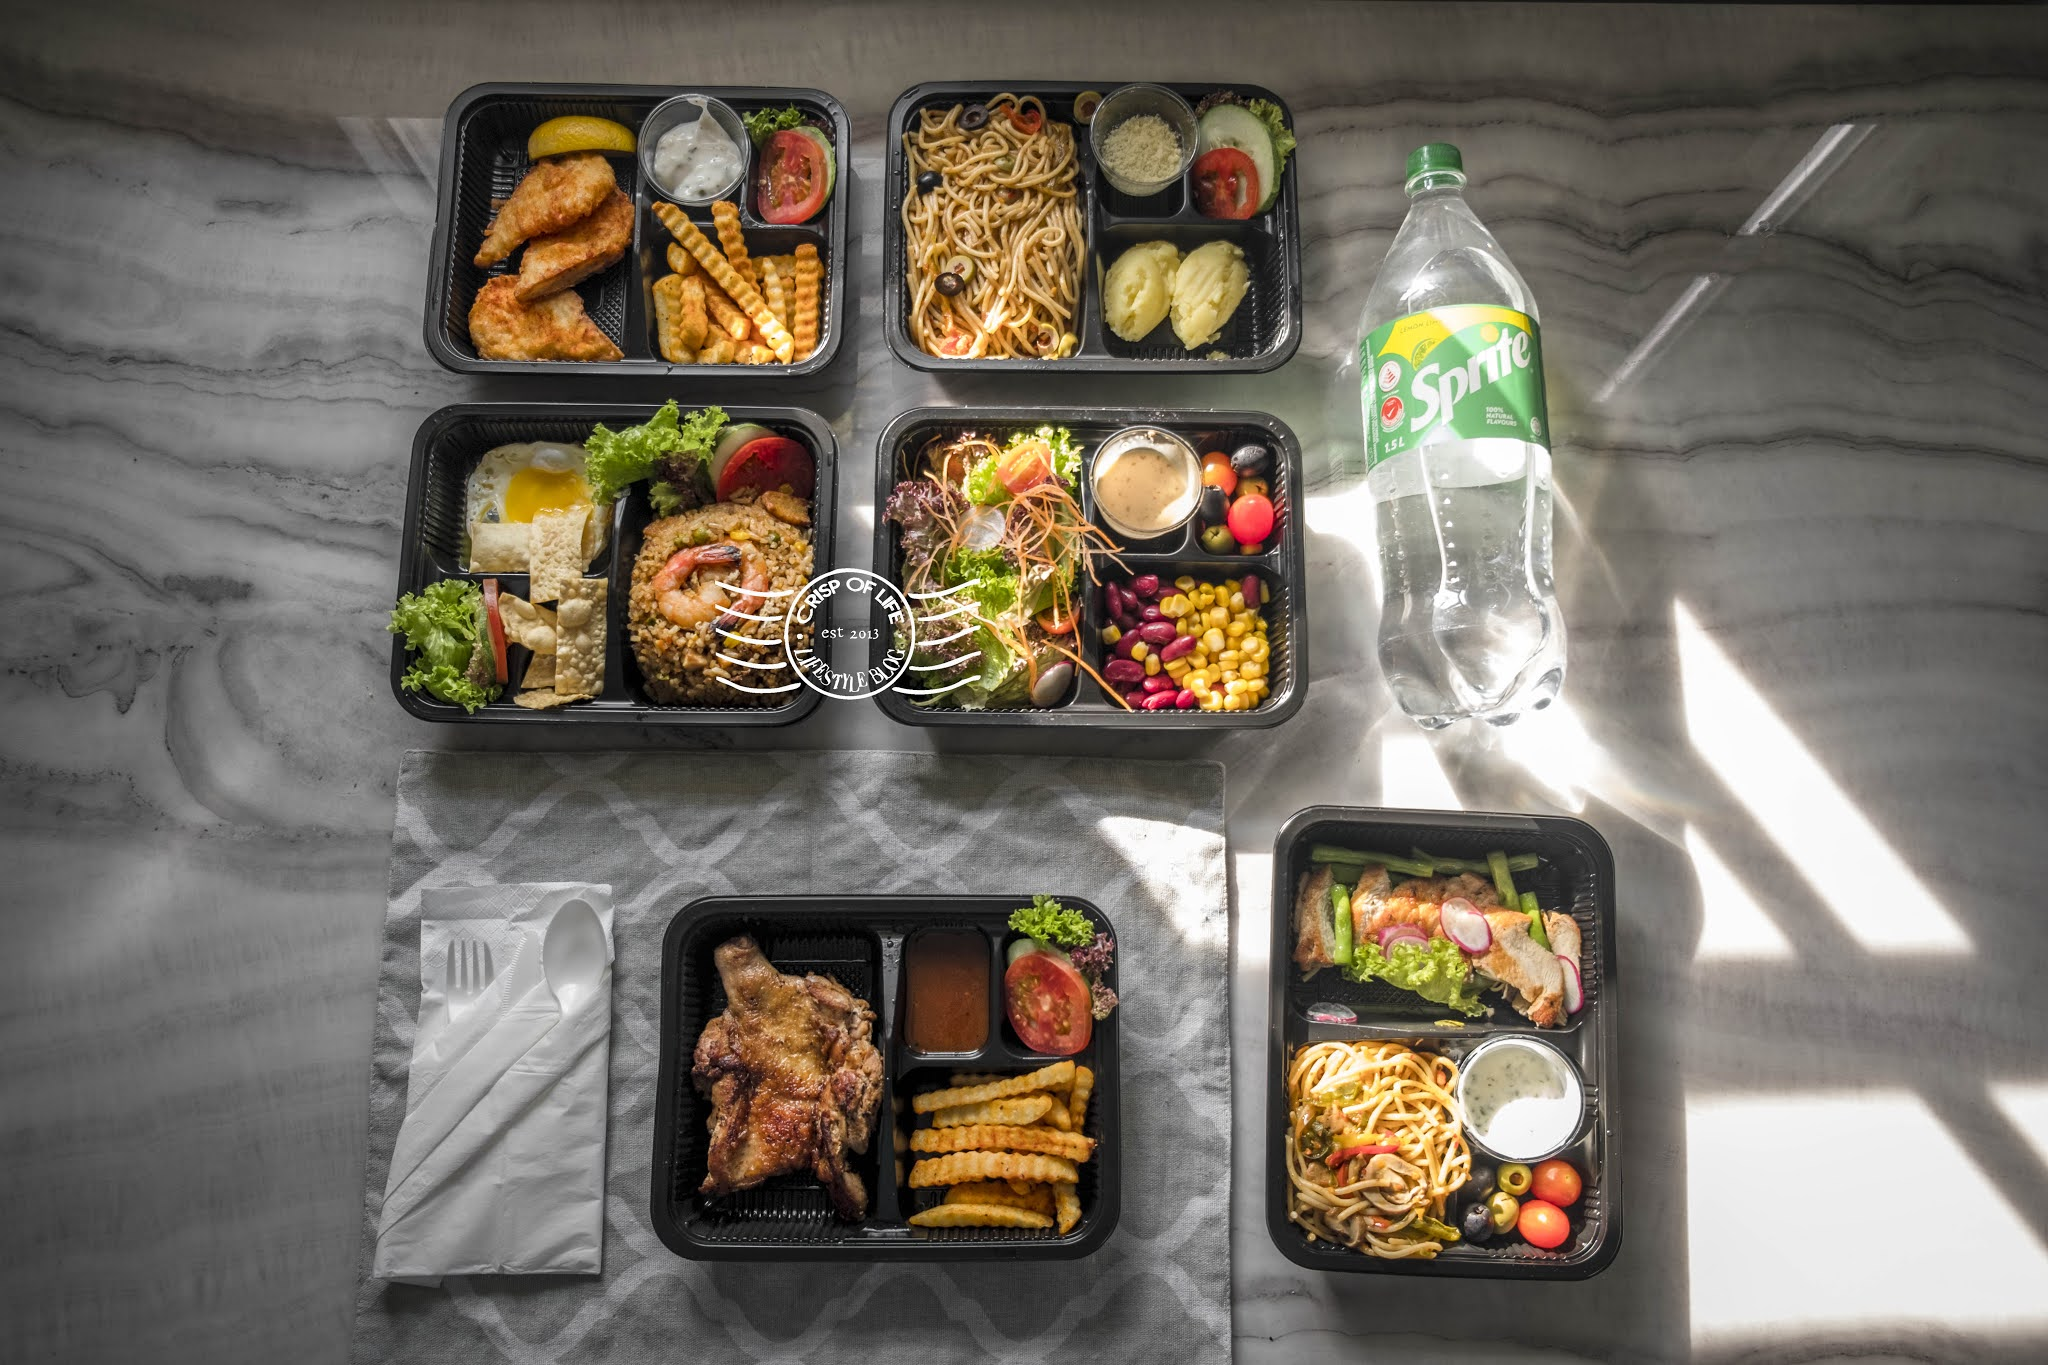 Stay At Home Made Easier with Hompton Hotel Affordable Food Delivery Starting From RM 8